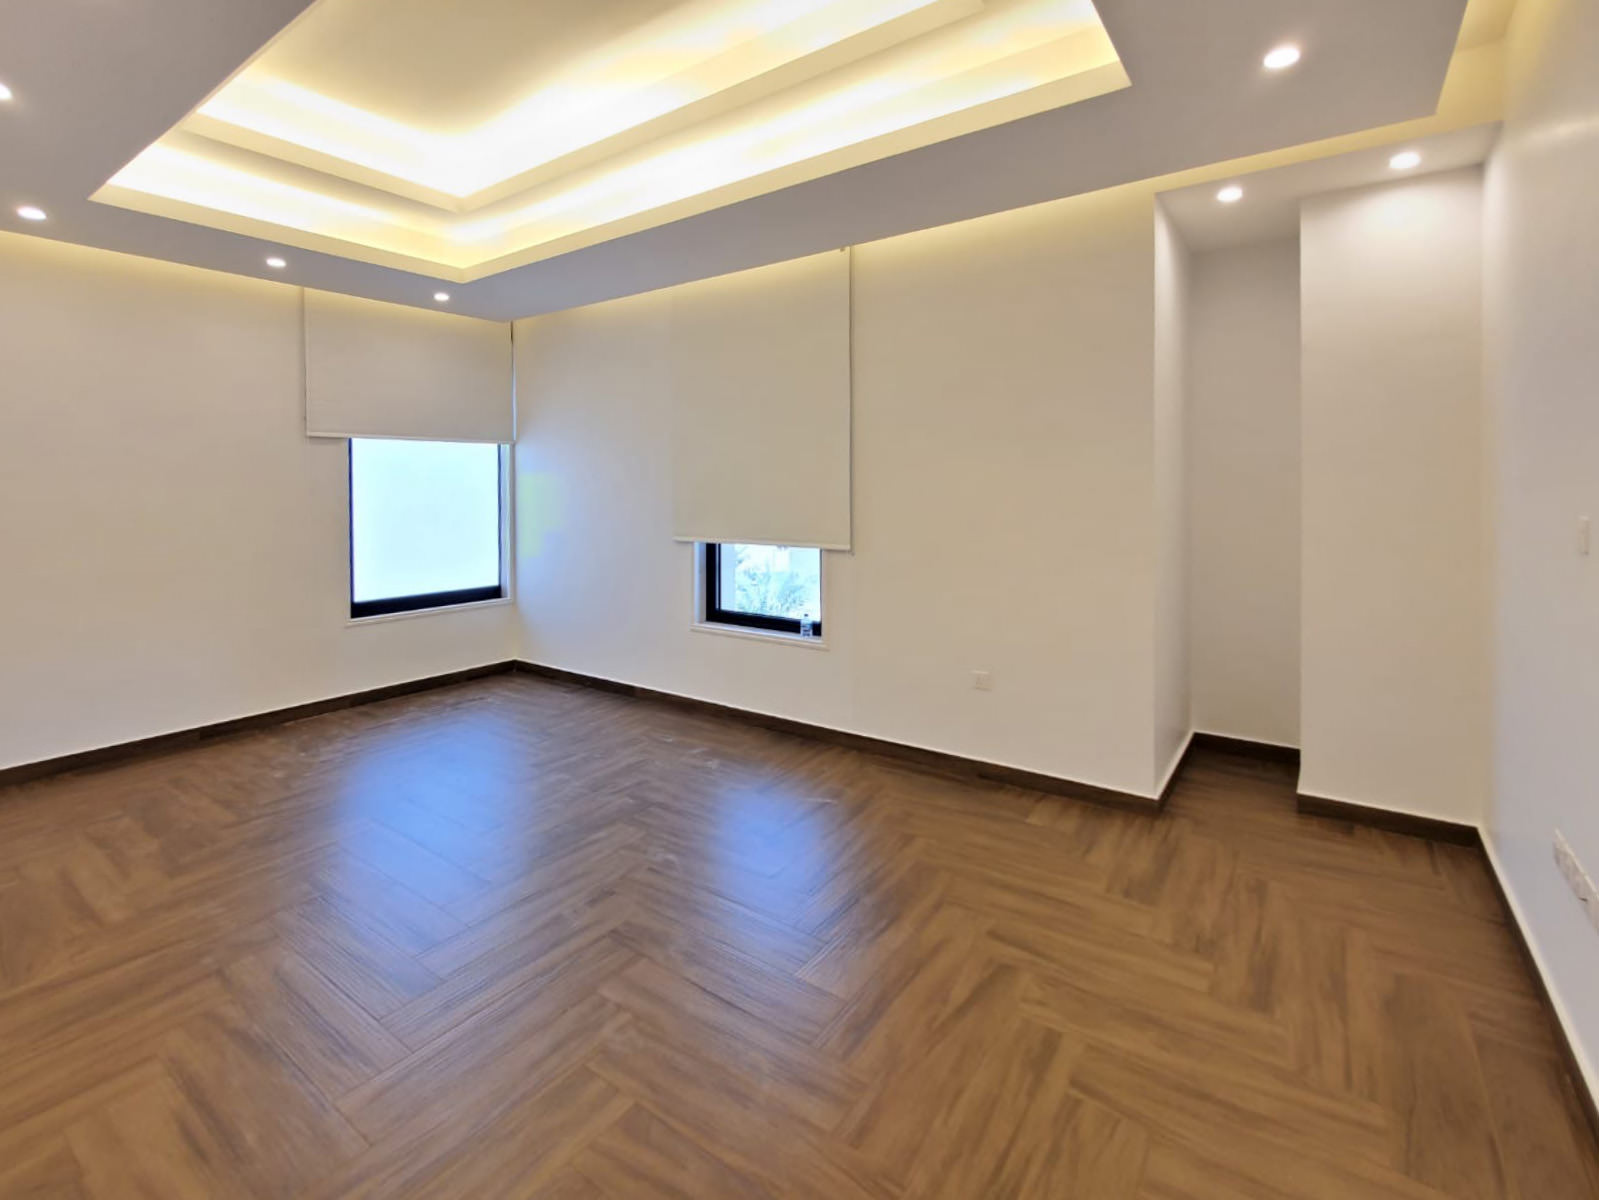 Hateen – large, unfurnished three bedroom apartment